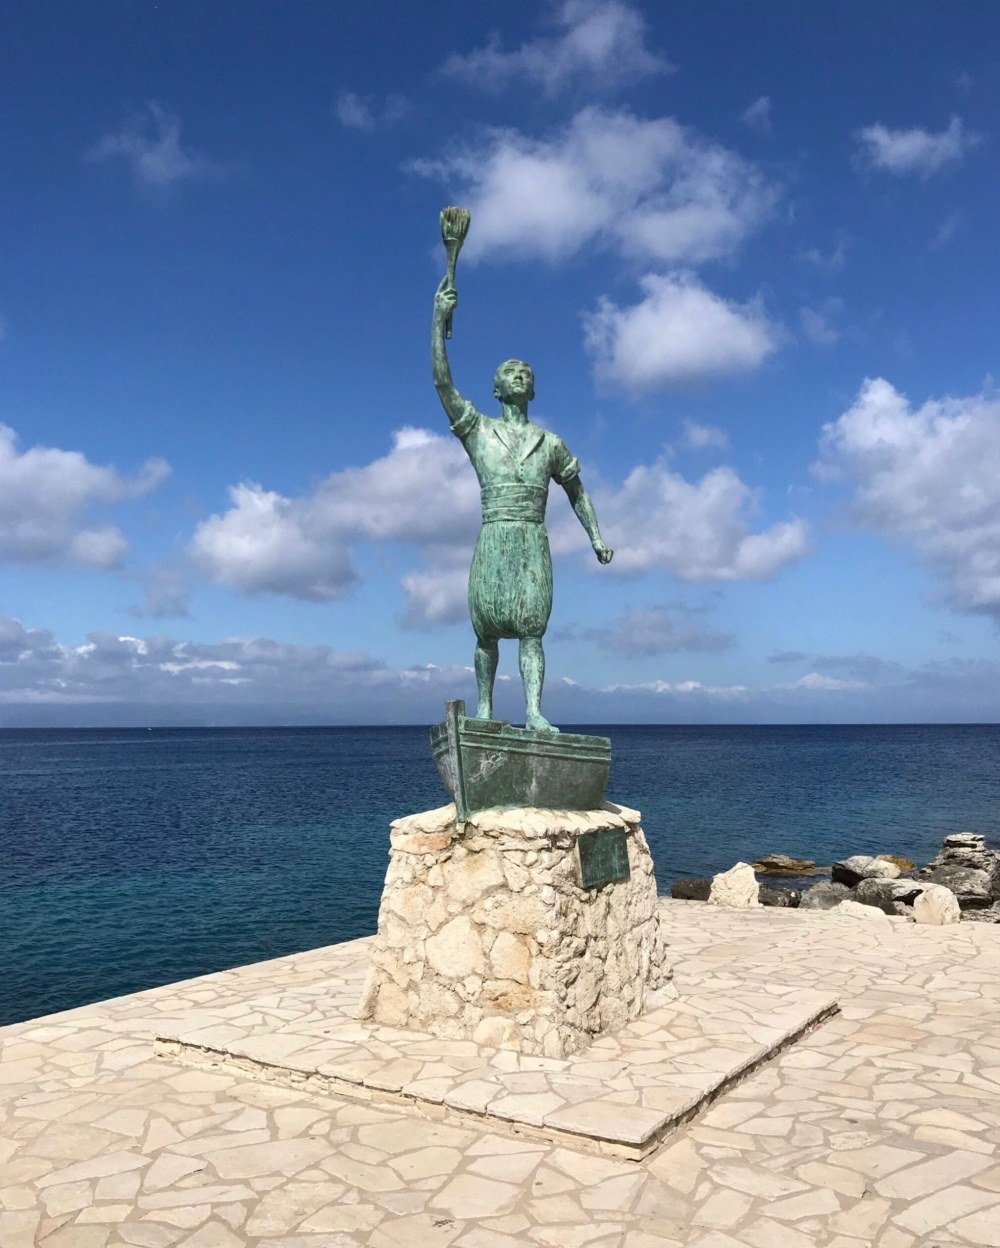 Statue in Gaios in Paxos Greece Photo Heatheronhertravels.com